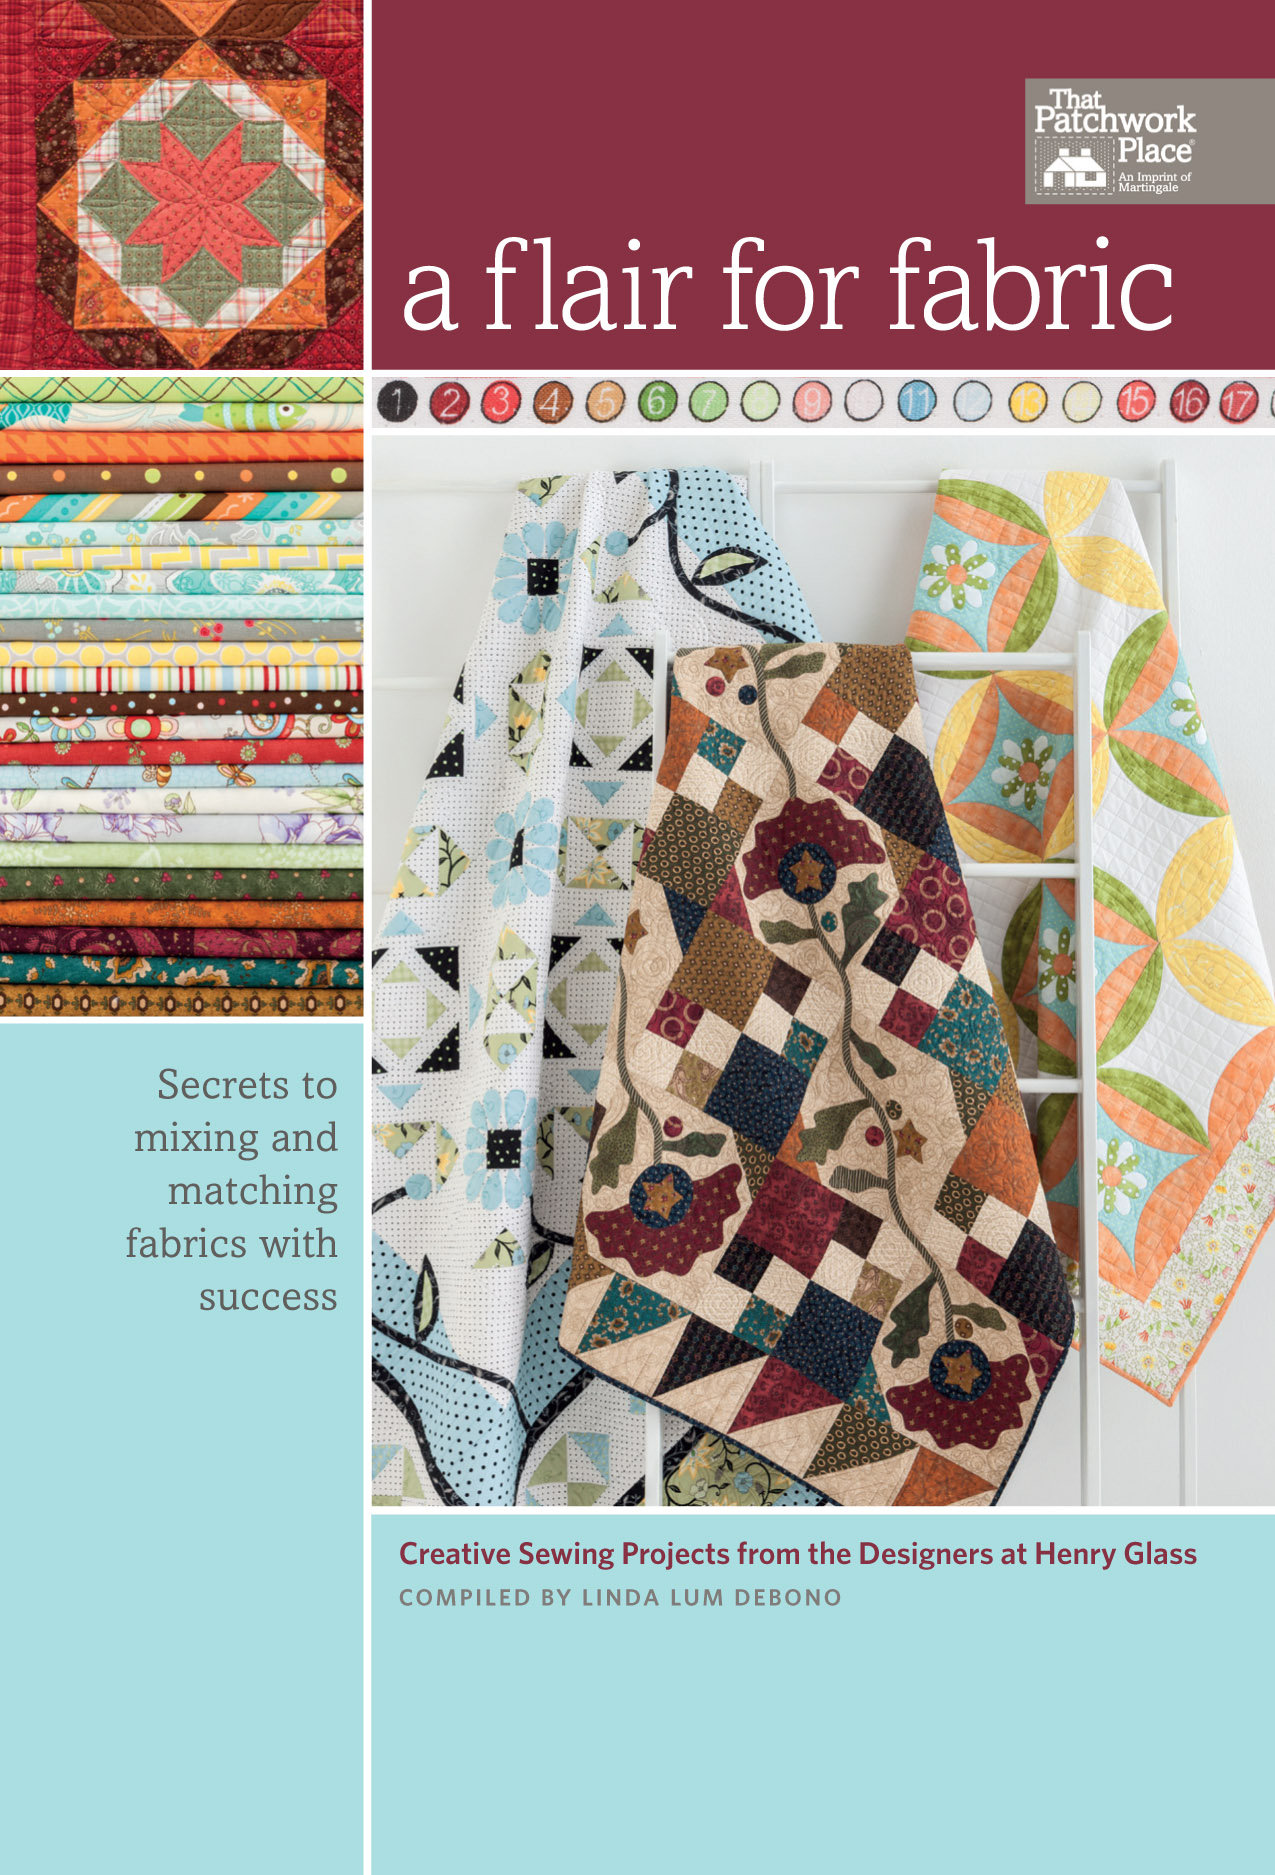 """A Flair For Fabric"" - Published by Martingale & Co."